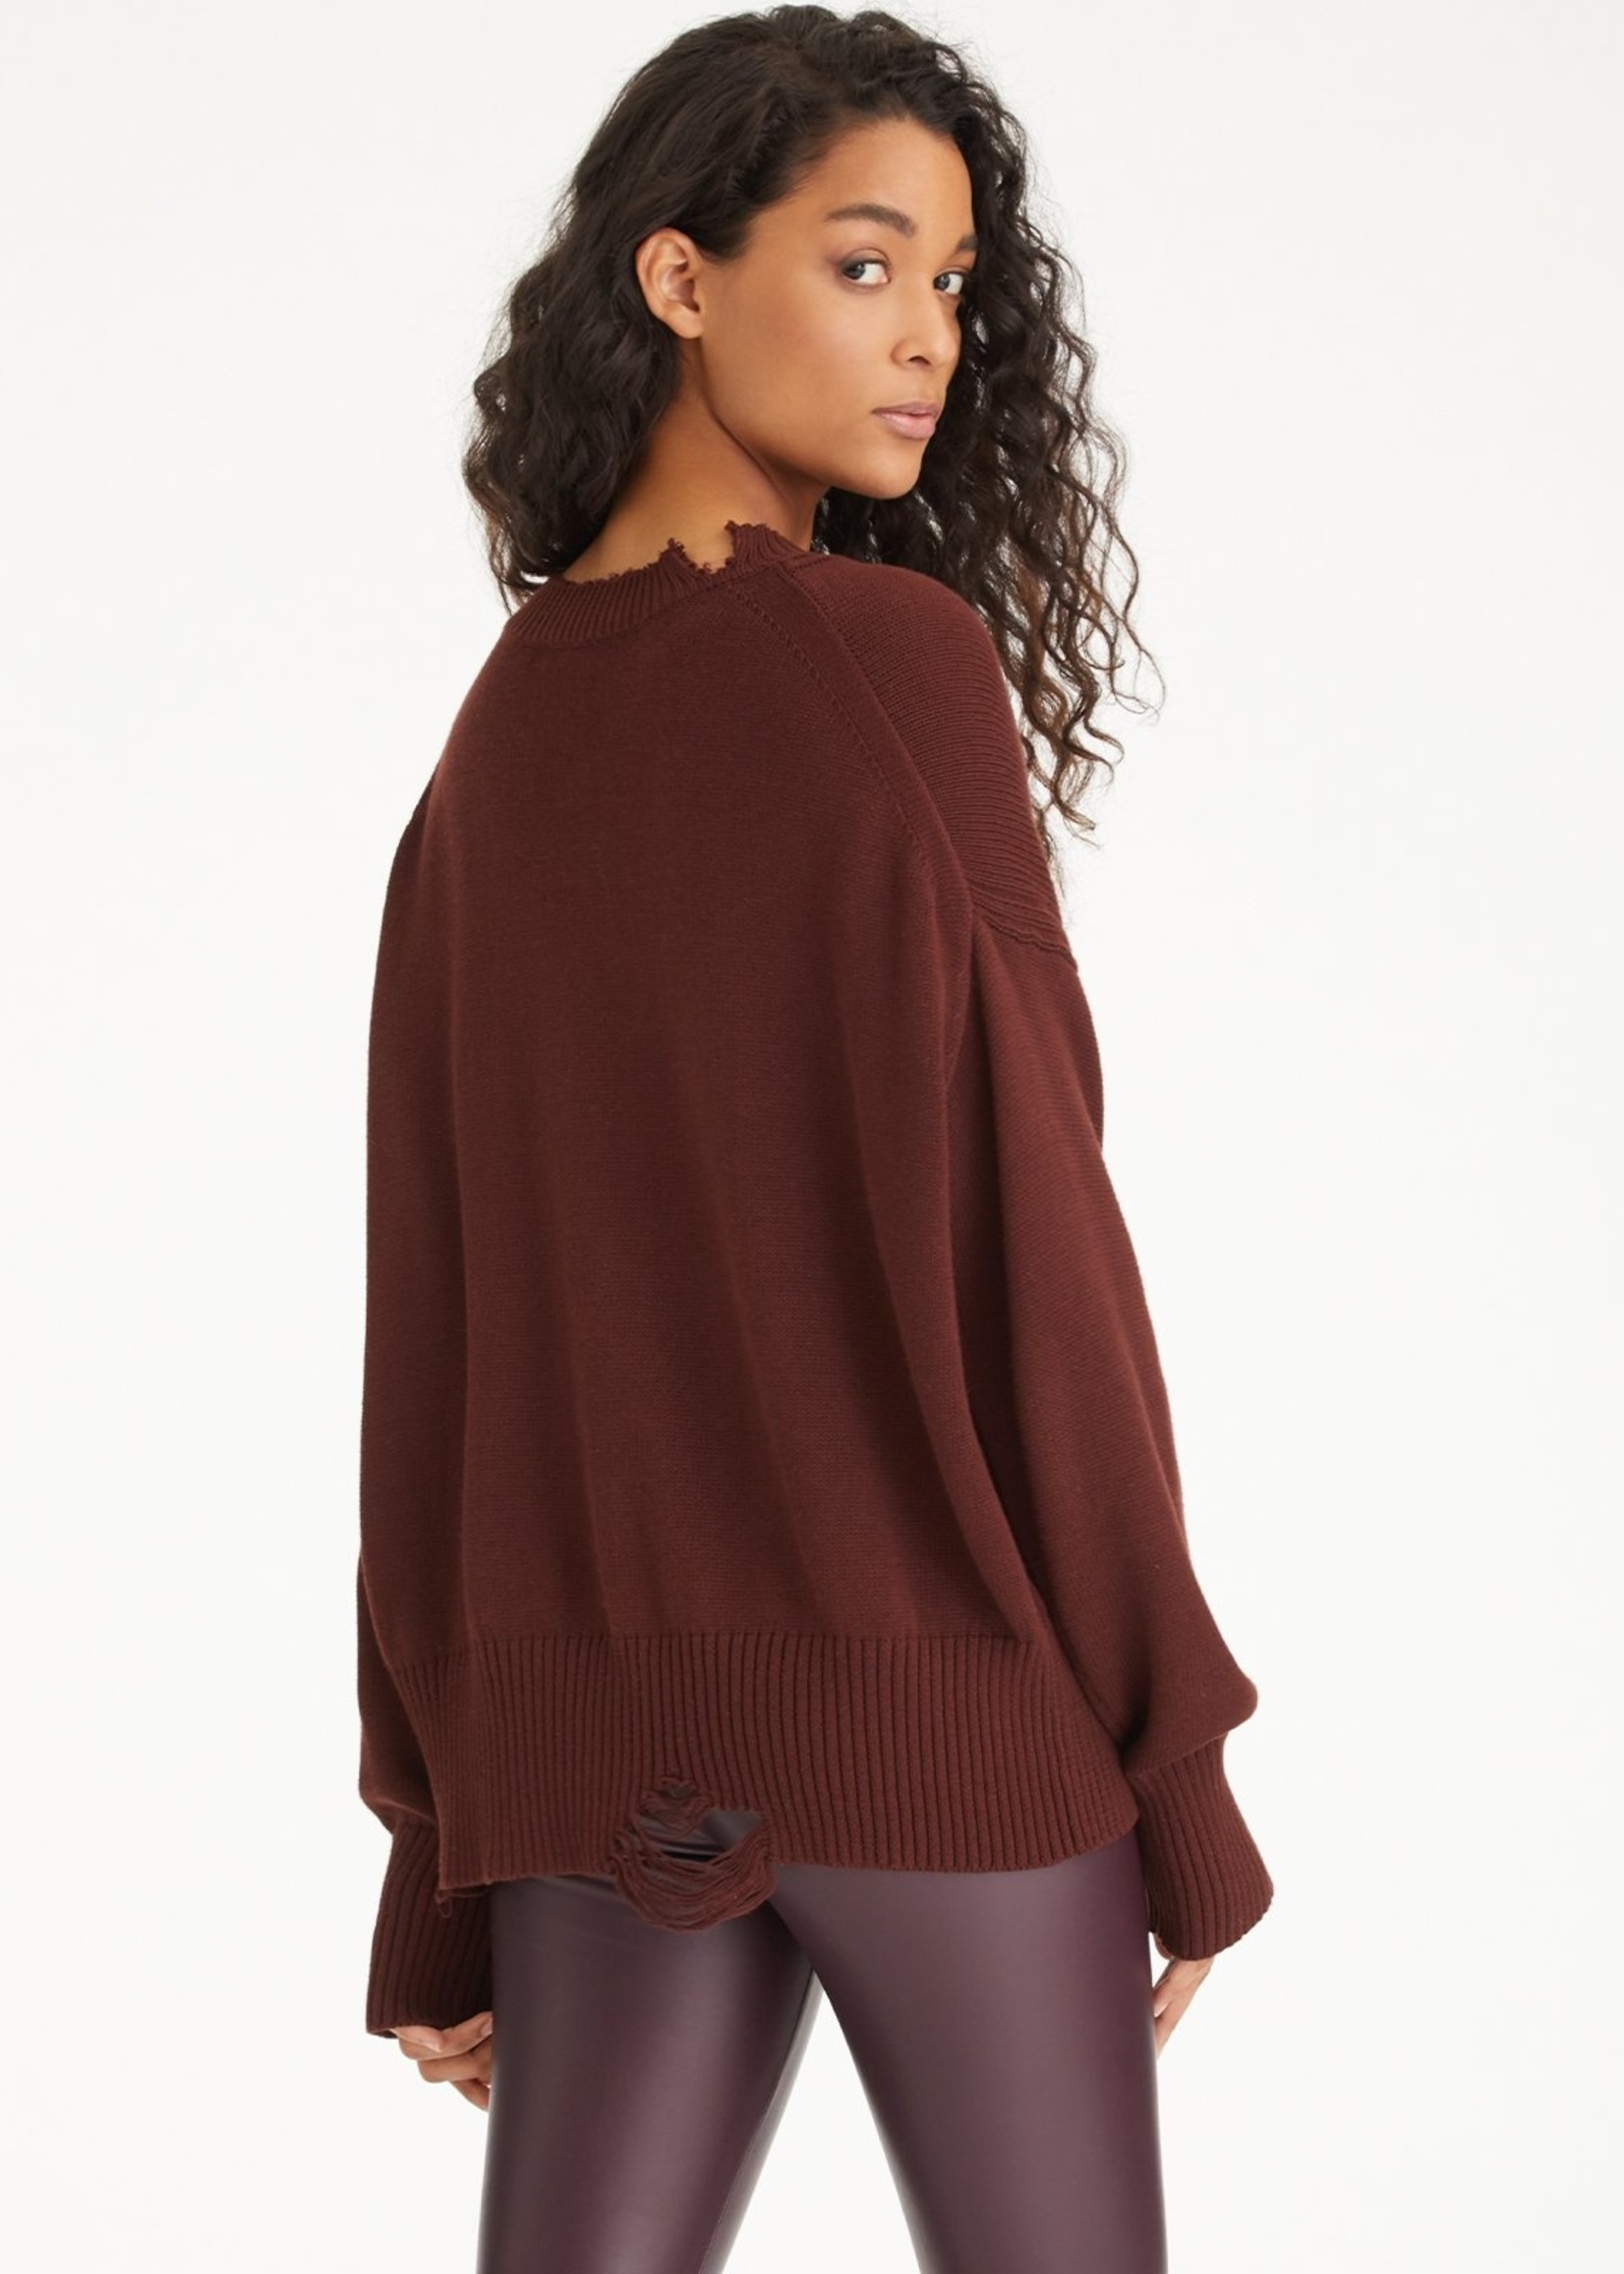 525 America Distressed Toasted Almond Pullover